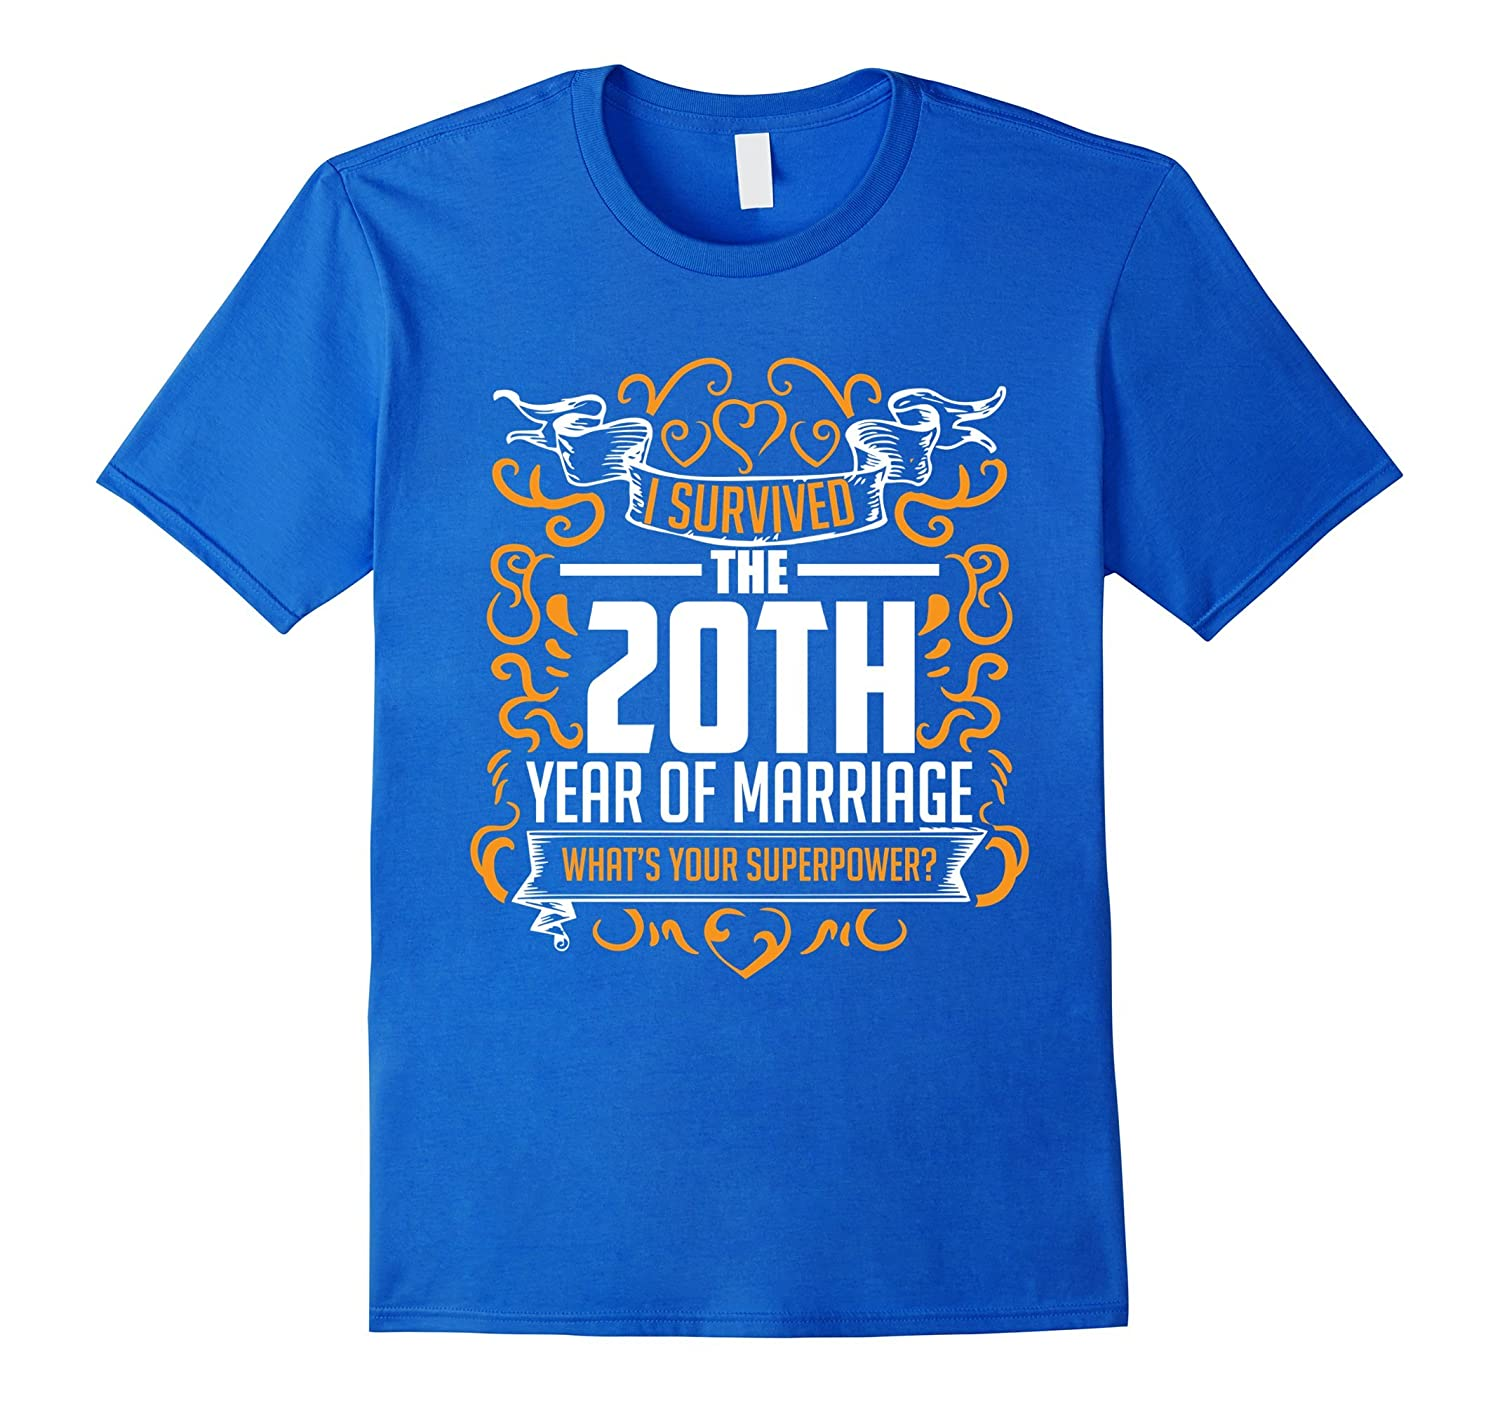 20th Wedding Anniversary Gifts 20 Year T Shirt For Her Him-RT ...